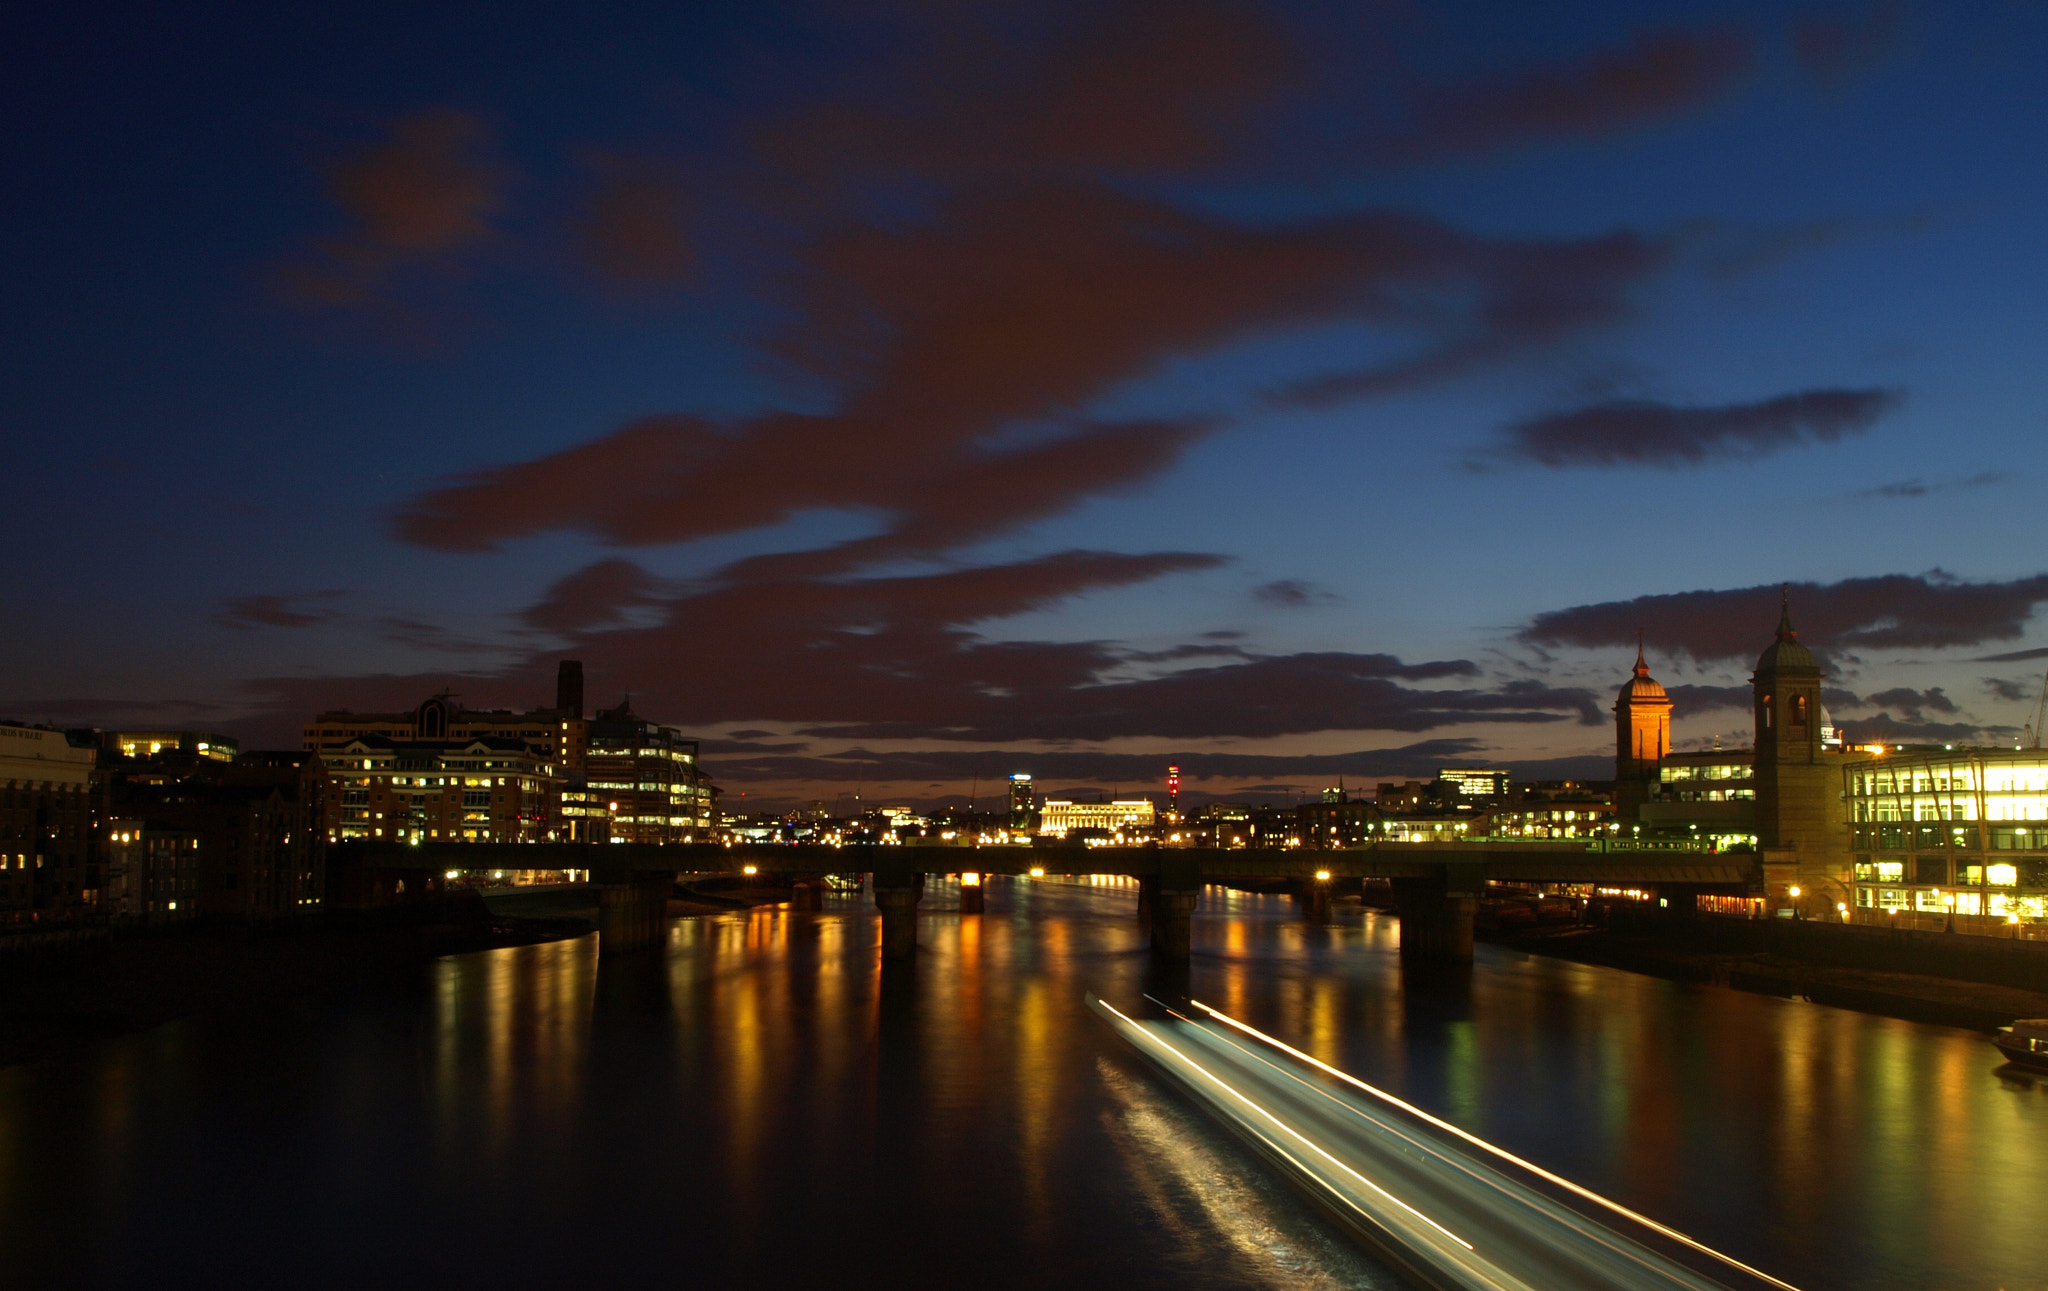 Photograph Cannon St. Railway Bridge by Jade Hucklesby on 500px